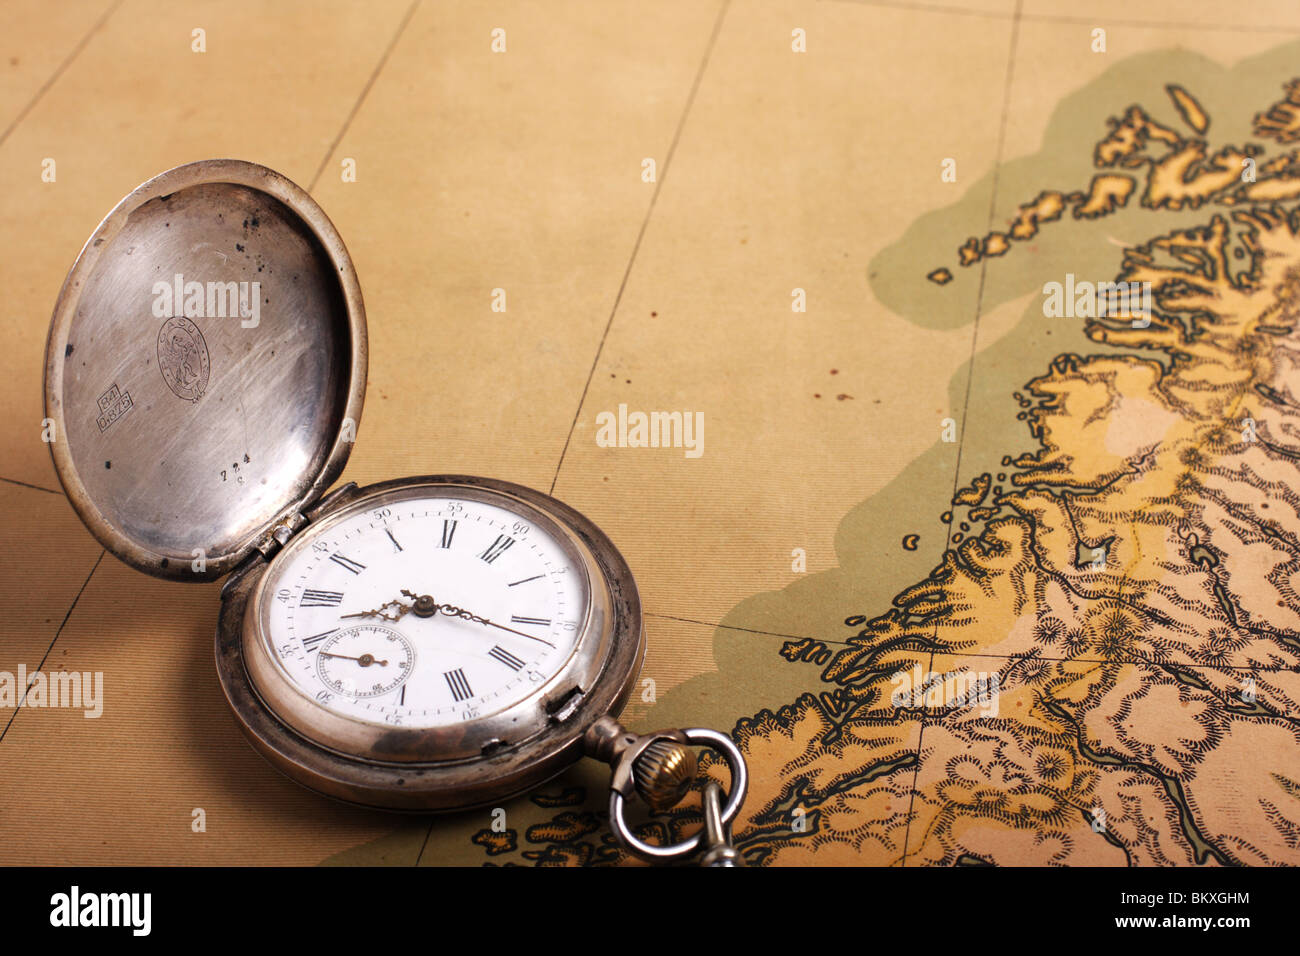 Clock old map stock photos clock old map stock images alamy old silver pocket watch on ancient map stock image gumiabroncs Image collections